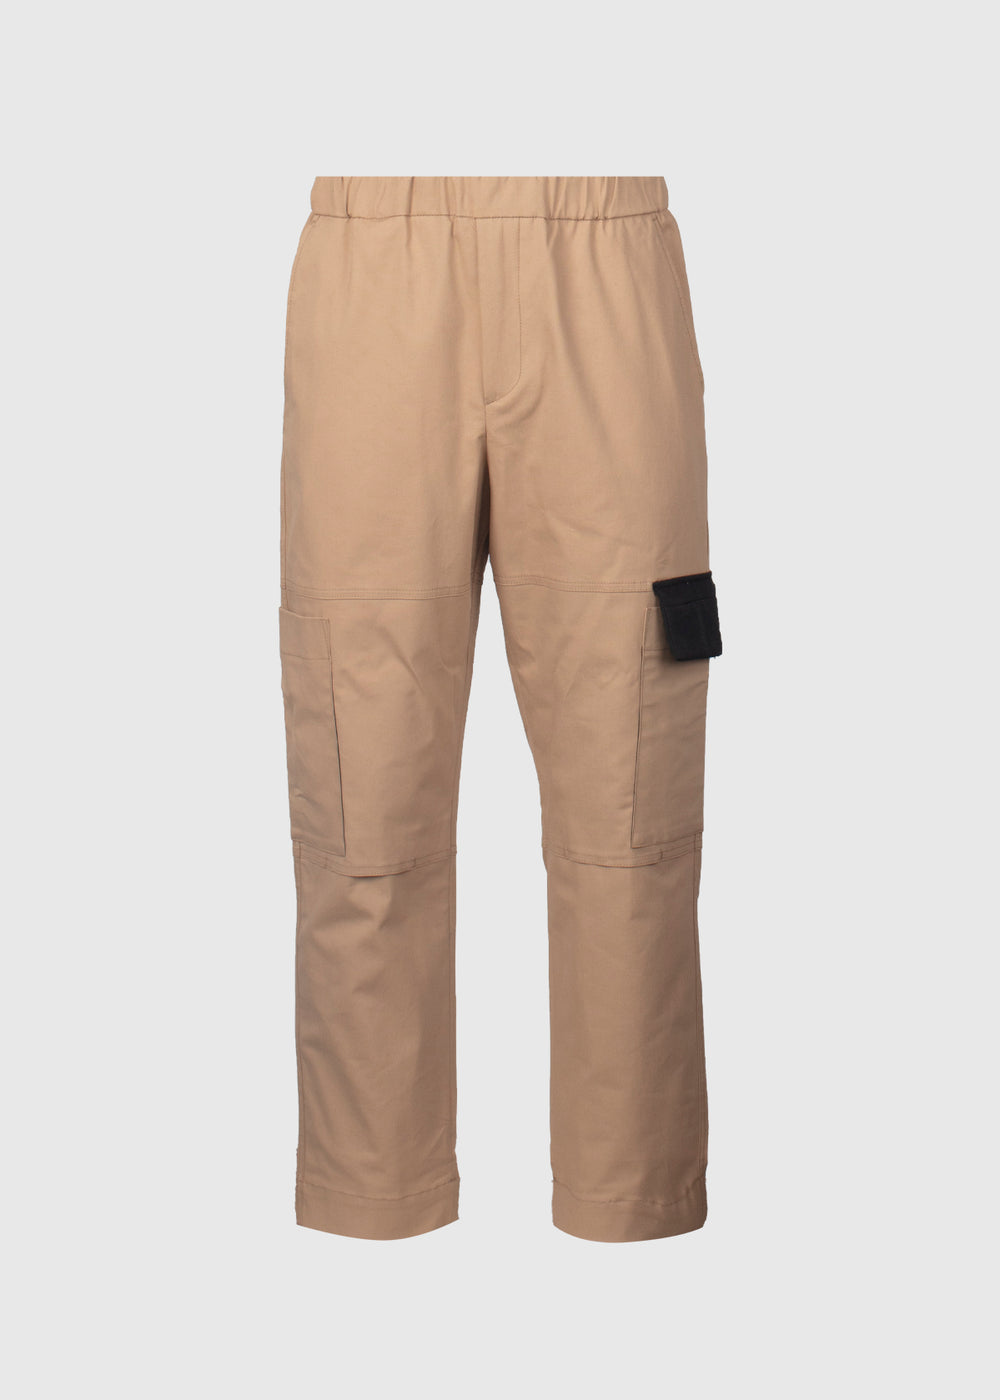 tapered-cargo-pant-f965pa2161ra-12-camel-1